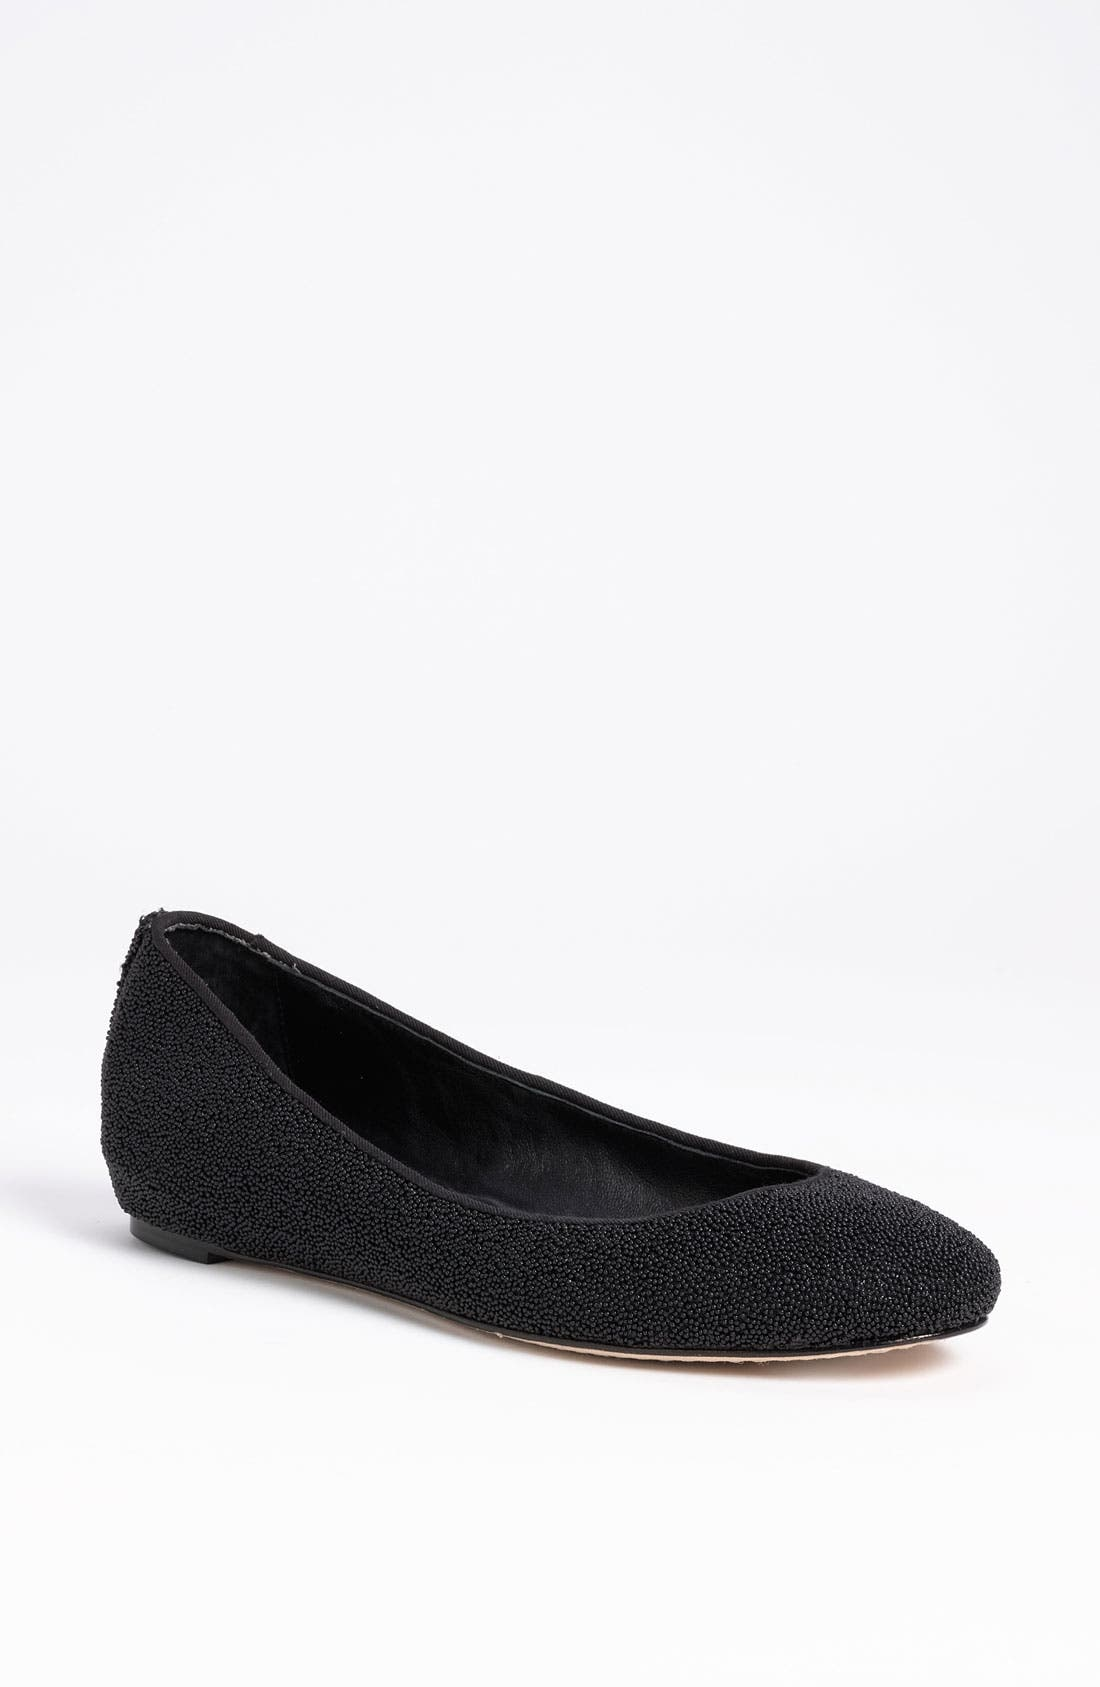 Main Image - Alice + Olivia 'Dawn' Flat